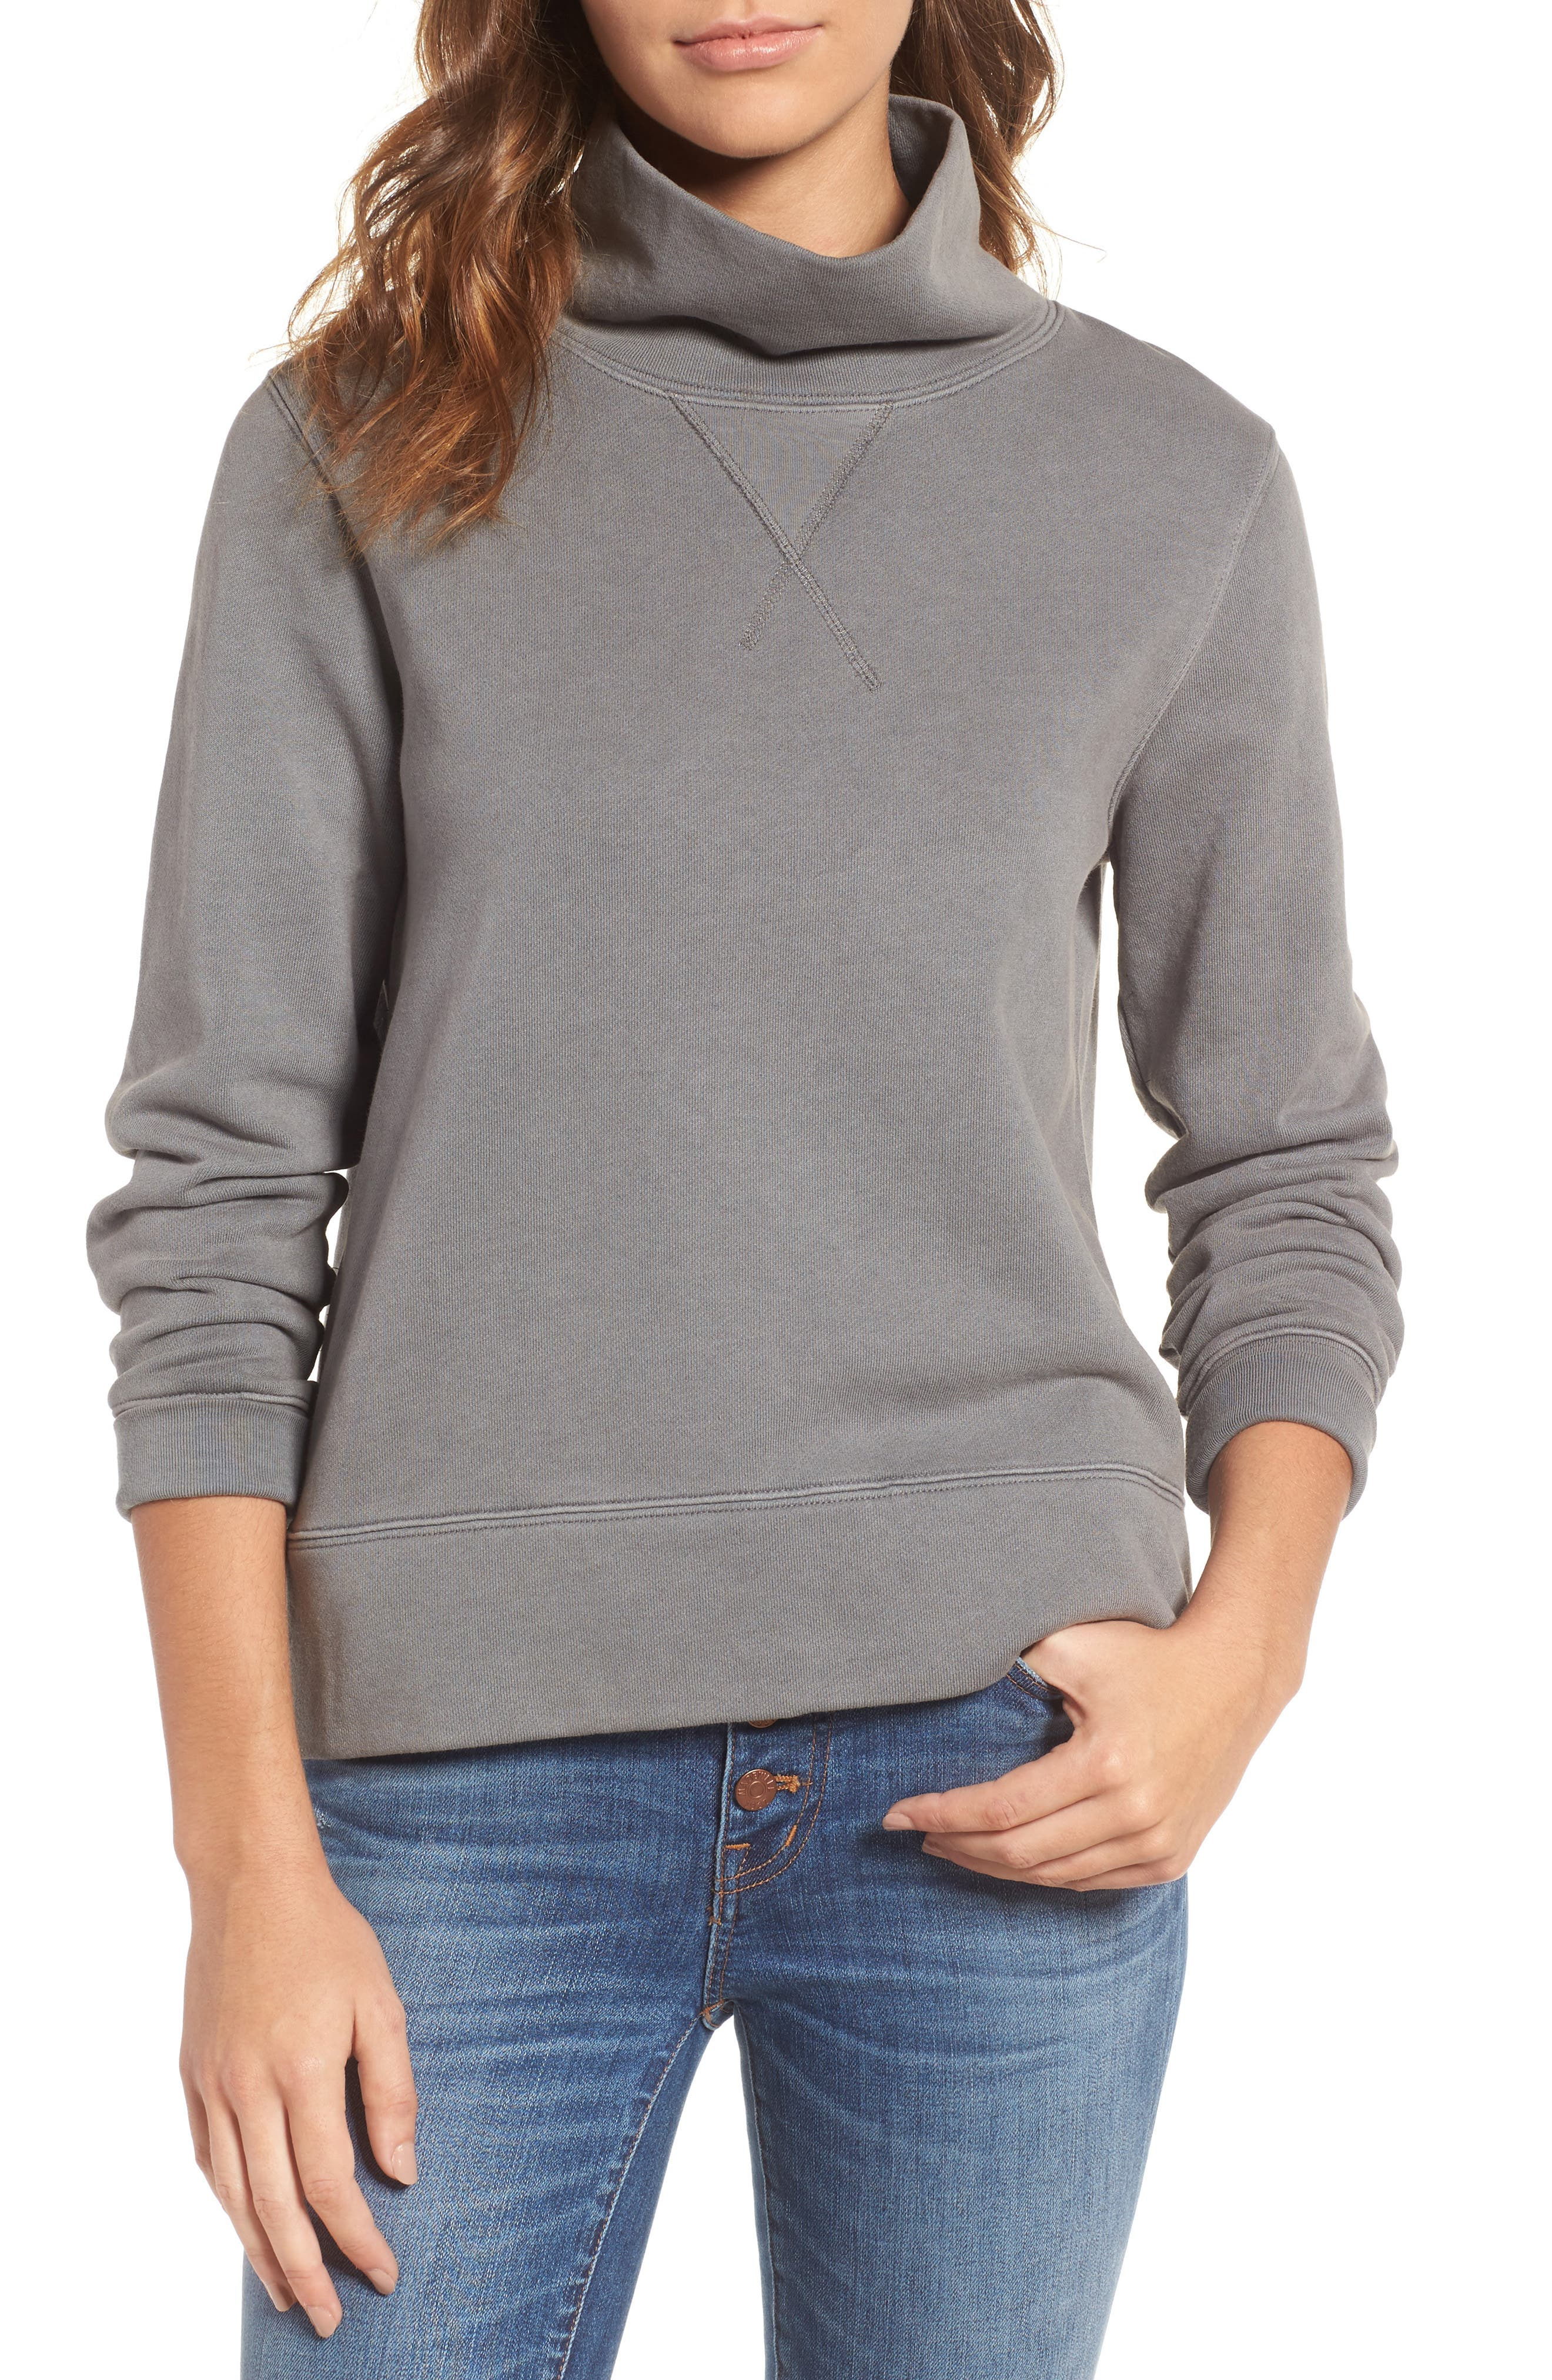 Madewell Garment Dyed Funnel Neck Sweatshirt